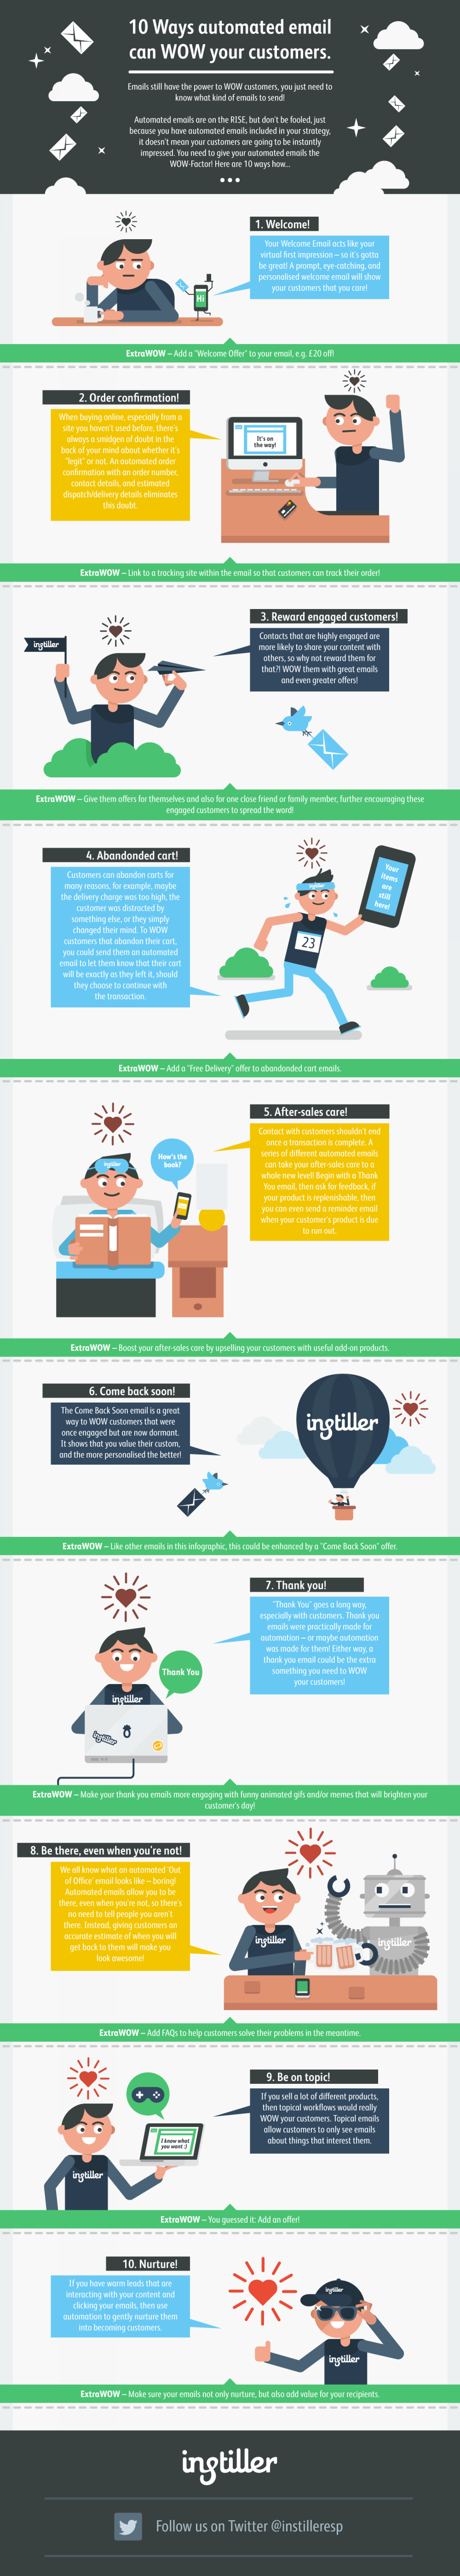 10 ways automated email can wow your customers Infographic